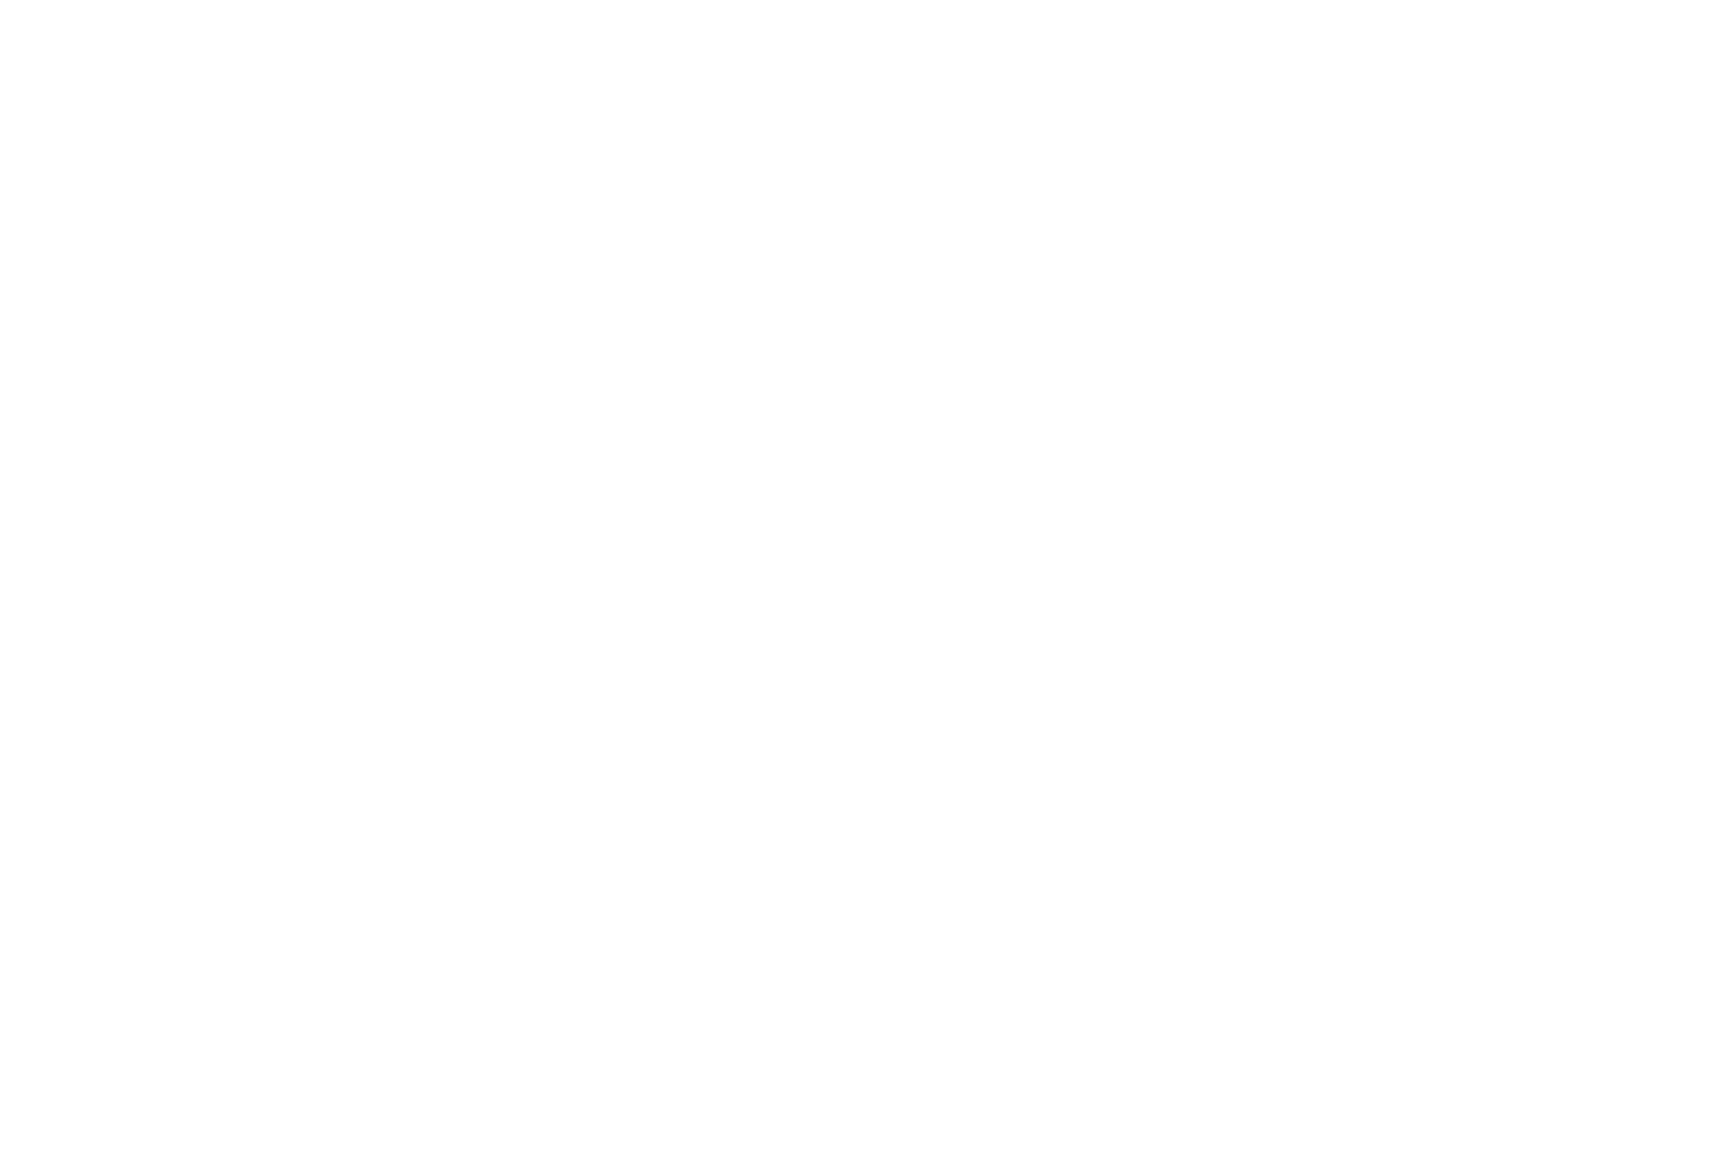 OFFICIAL SELECTION - Docs Without Borders Film Festival - 2017.png